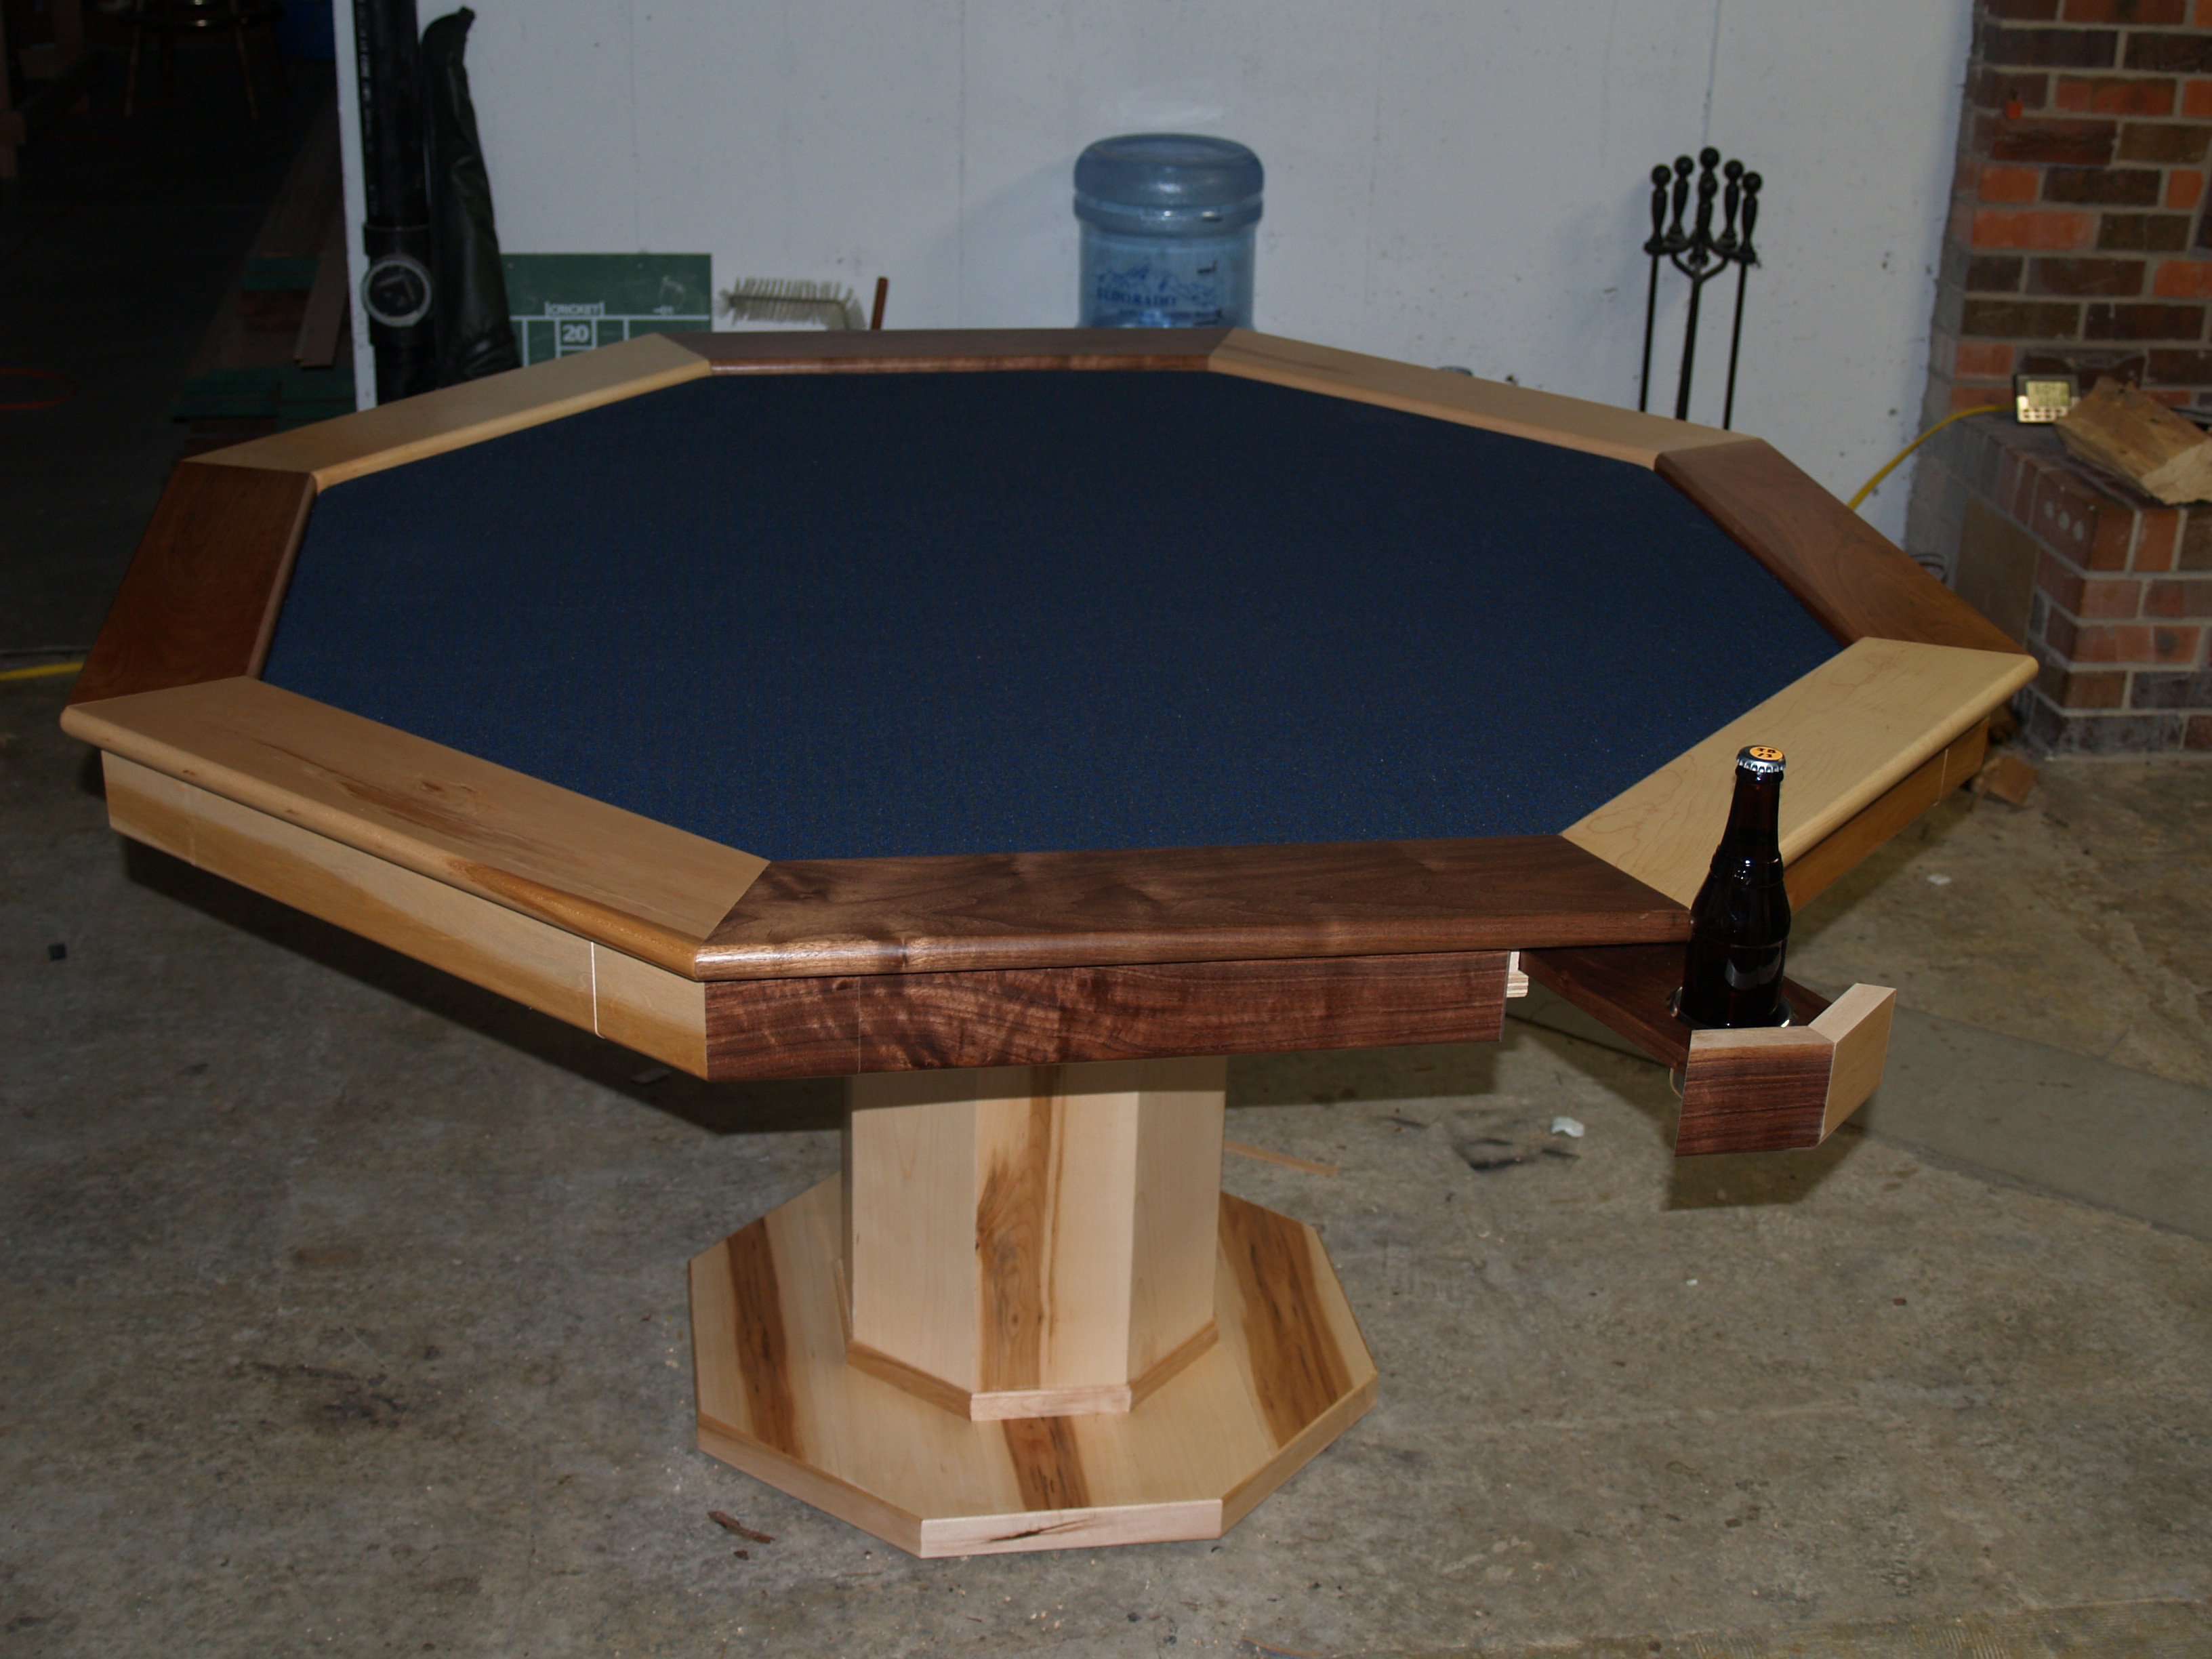 Poker Table With Hiding Beverage Holder Ana White